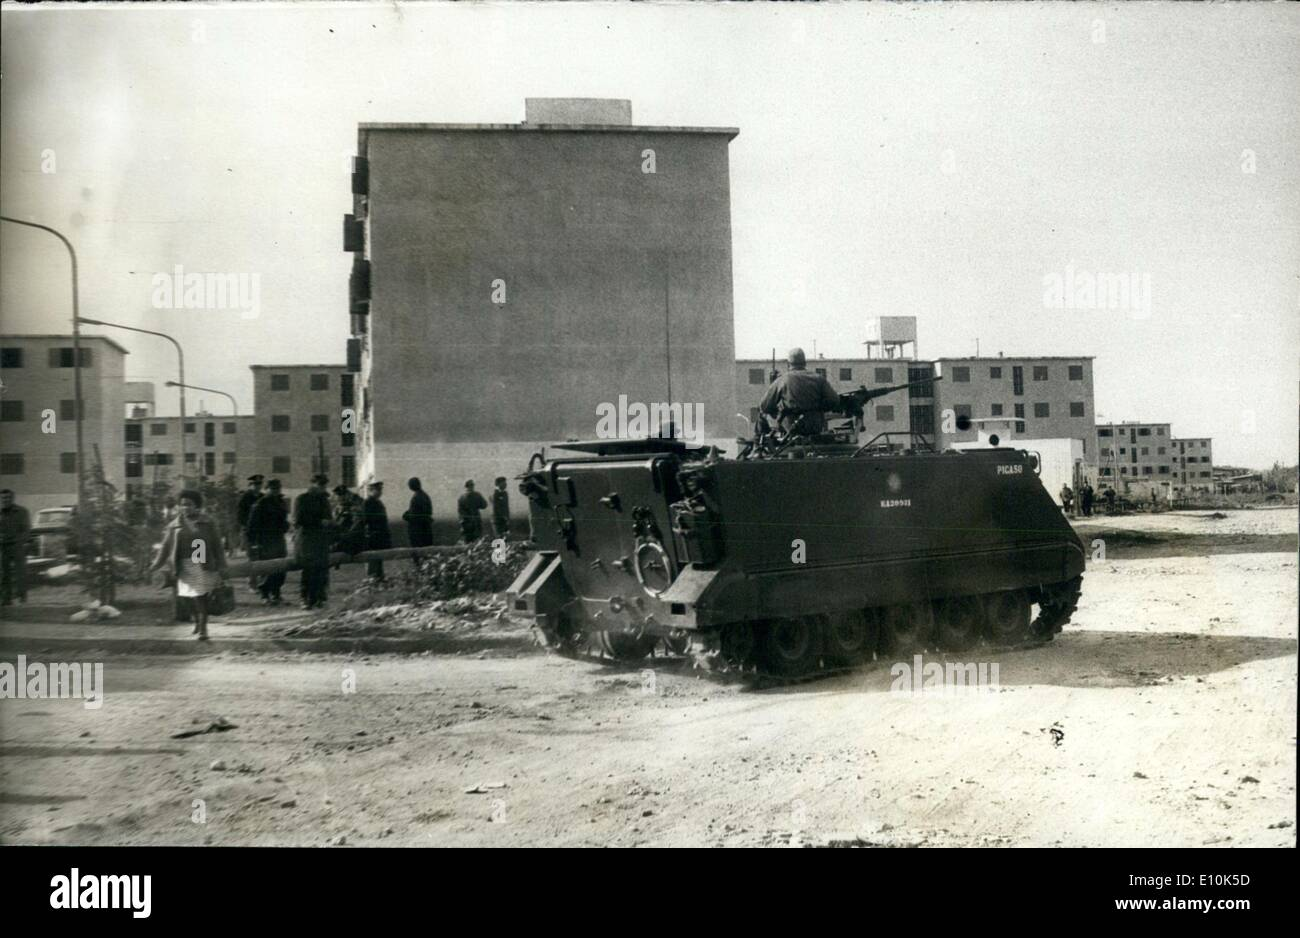 May 05, 1973 - Barrio General Belgrano, Buenos Aires Province, Argentina : Tanks, lo arms and some 500 soldiers were necessary to oblige some hundreds  gal occupants of the recently terminated constructions by the Mun of Buenos aires. Someones from the new dwellings at the ''Barrio G Belgrano'' at the outirt ob Buenos Aires who already were assig hundreds of fmilies one finished the dwellings. This city distri have a capacity for 10.072 persons once finished - Stock Image